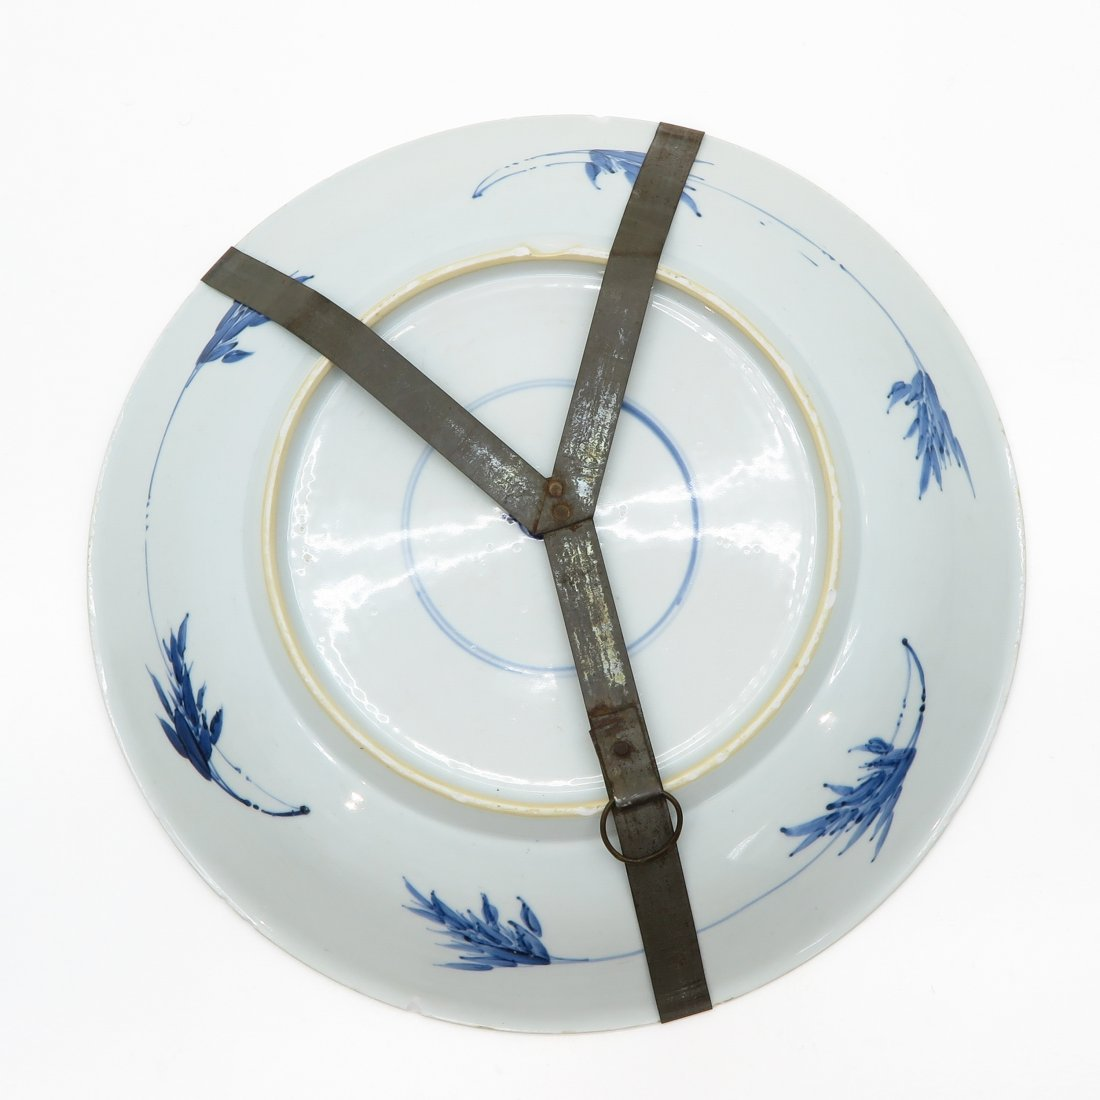 18th Century China Porcelain Plate - 2